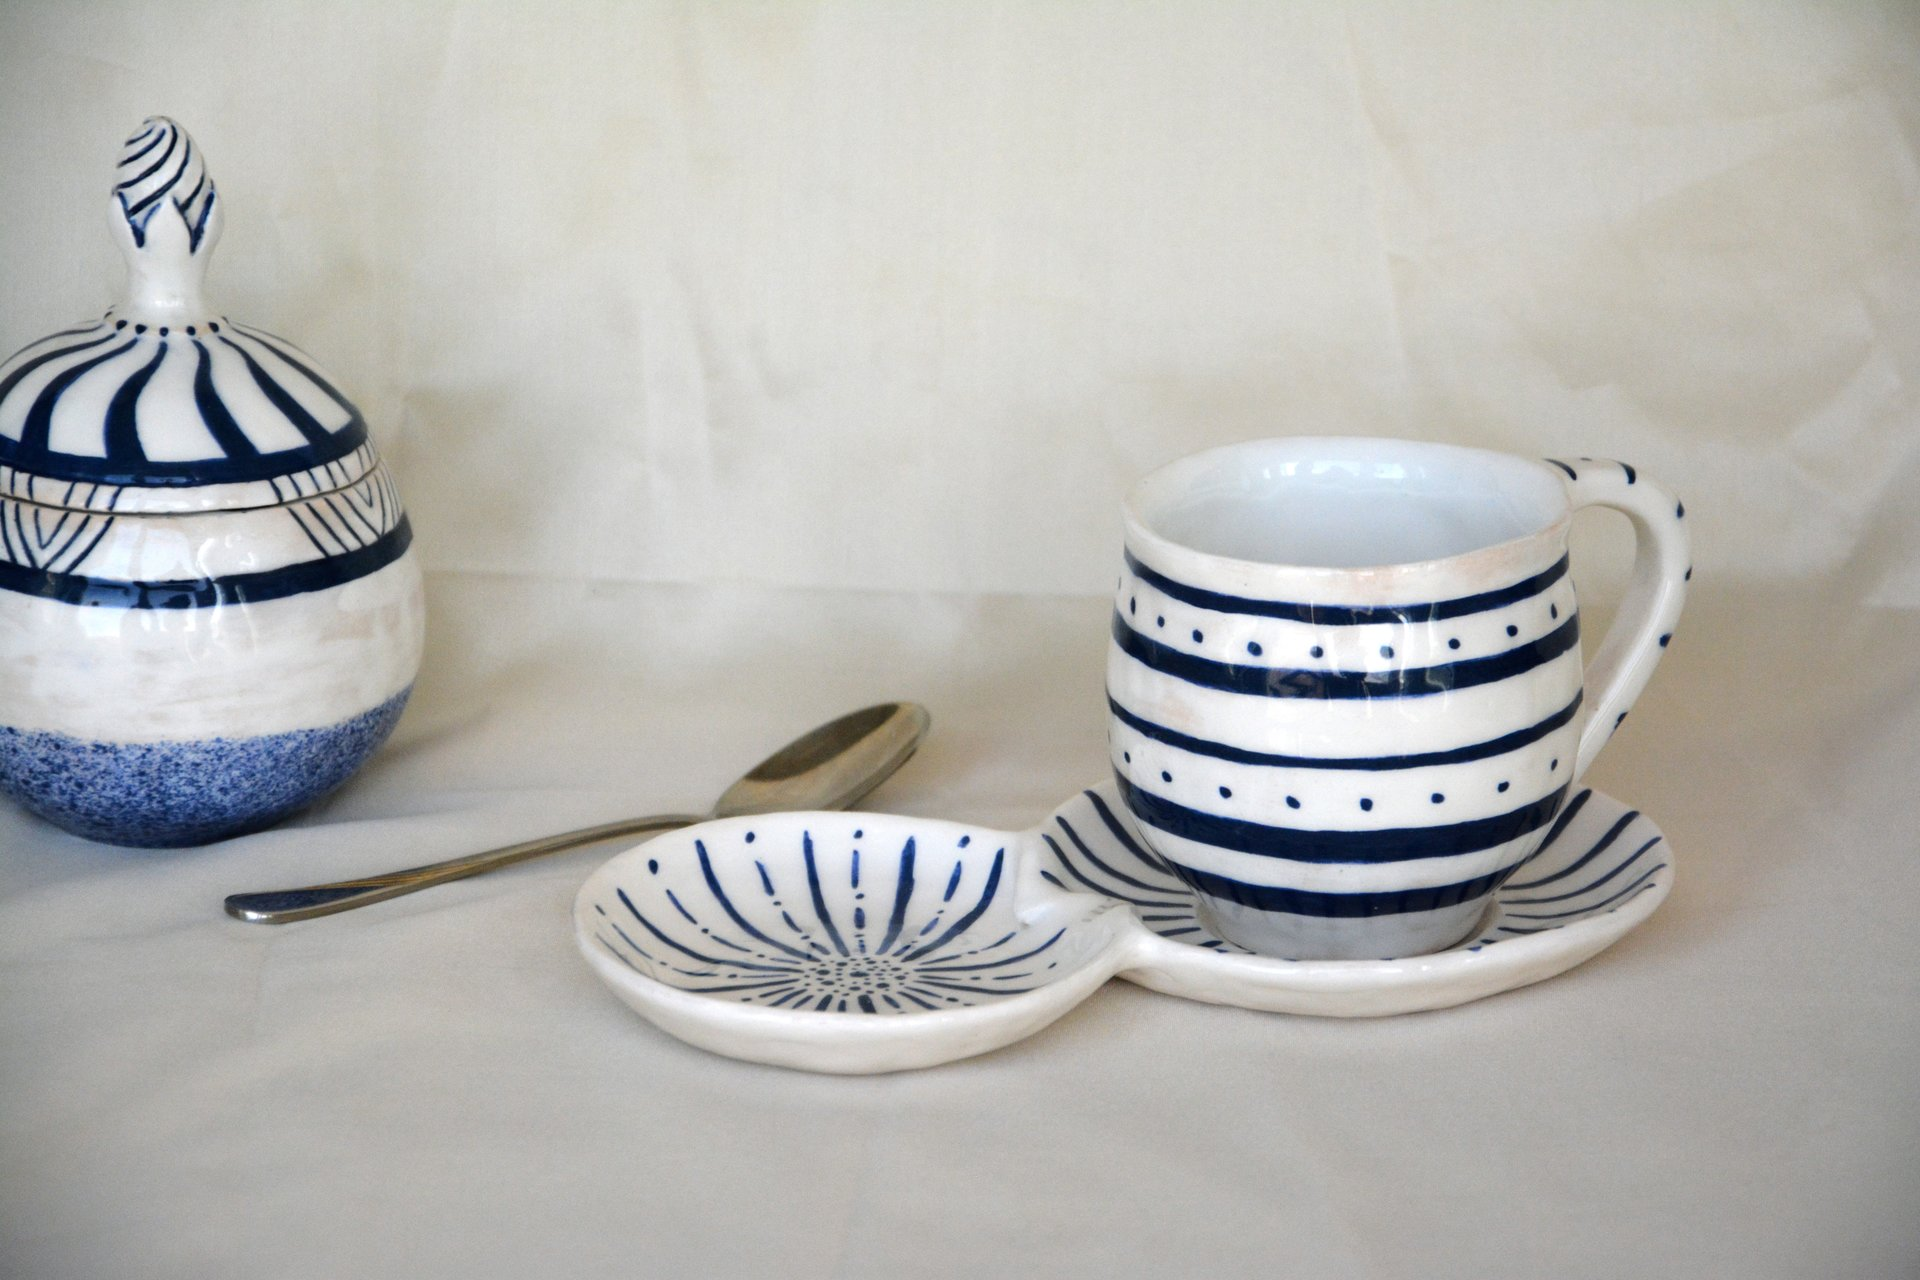 White with blue pattern Strips - Cups, glasses, mugs, height - 7,5 cm, volume - 250 ml, photo 3 of 4.